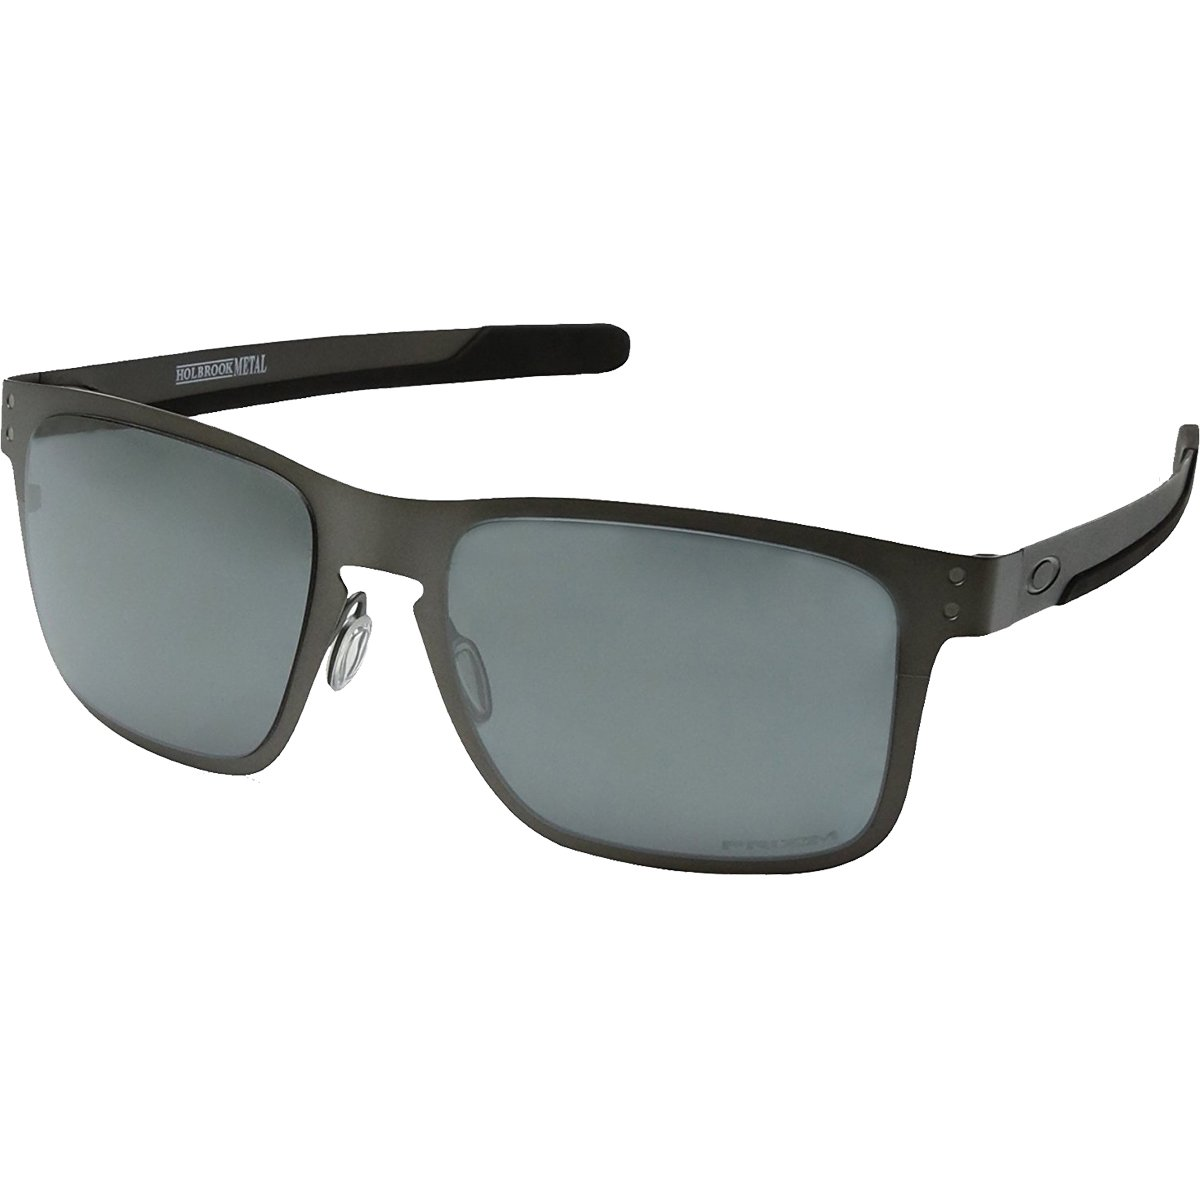 Oakley Men's OO4123 Holbrook Metal Square Sunglasses, Matte Gunmetal/Prizm Black Polarized, 55 mm by Oakley